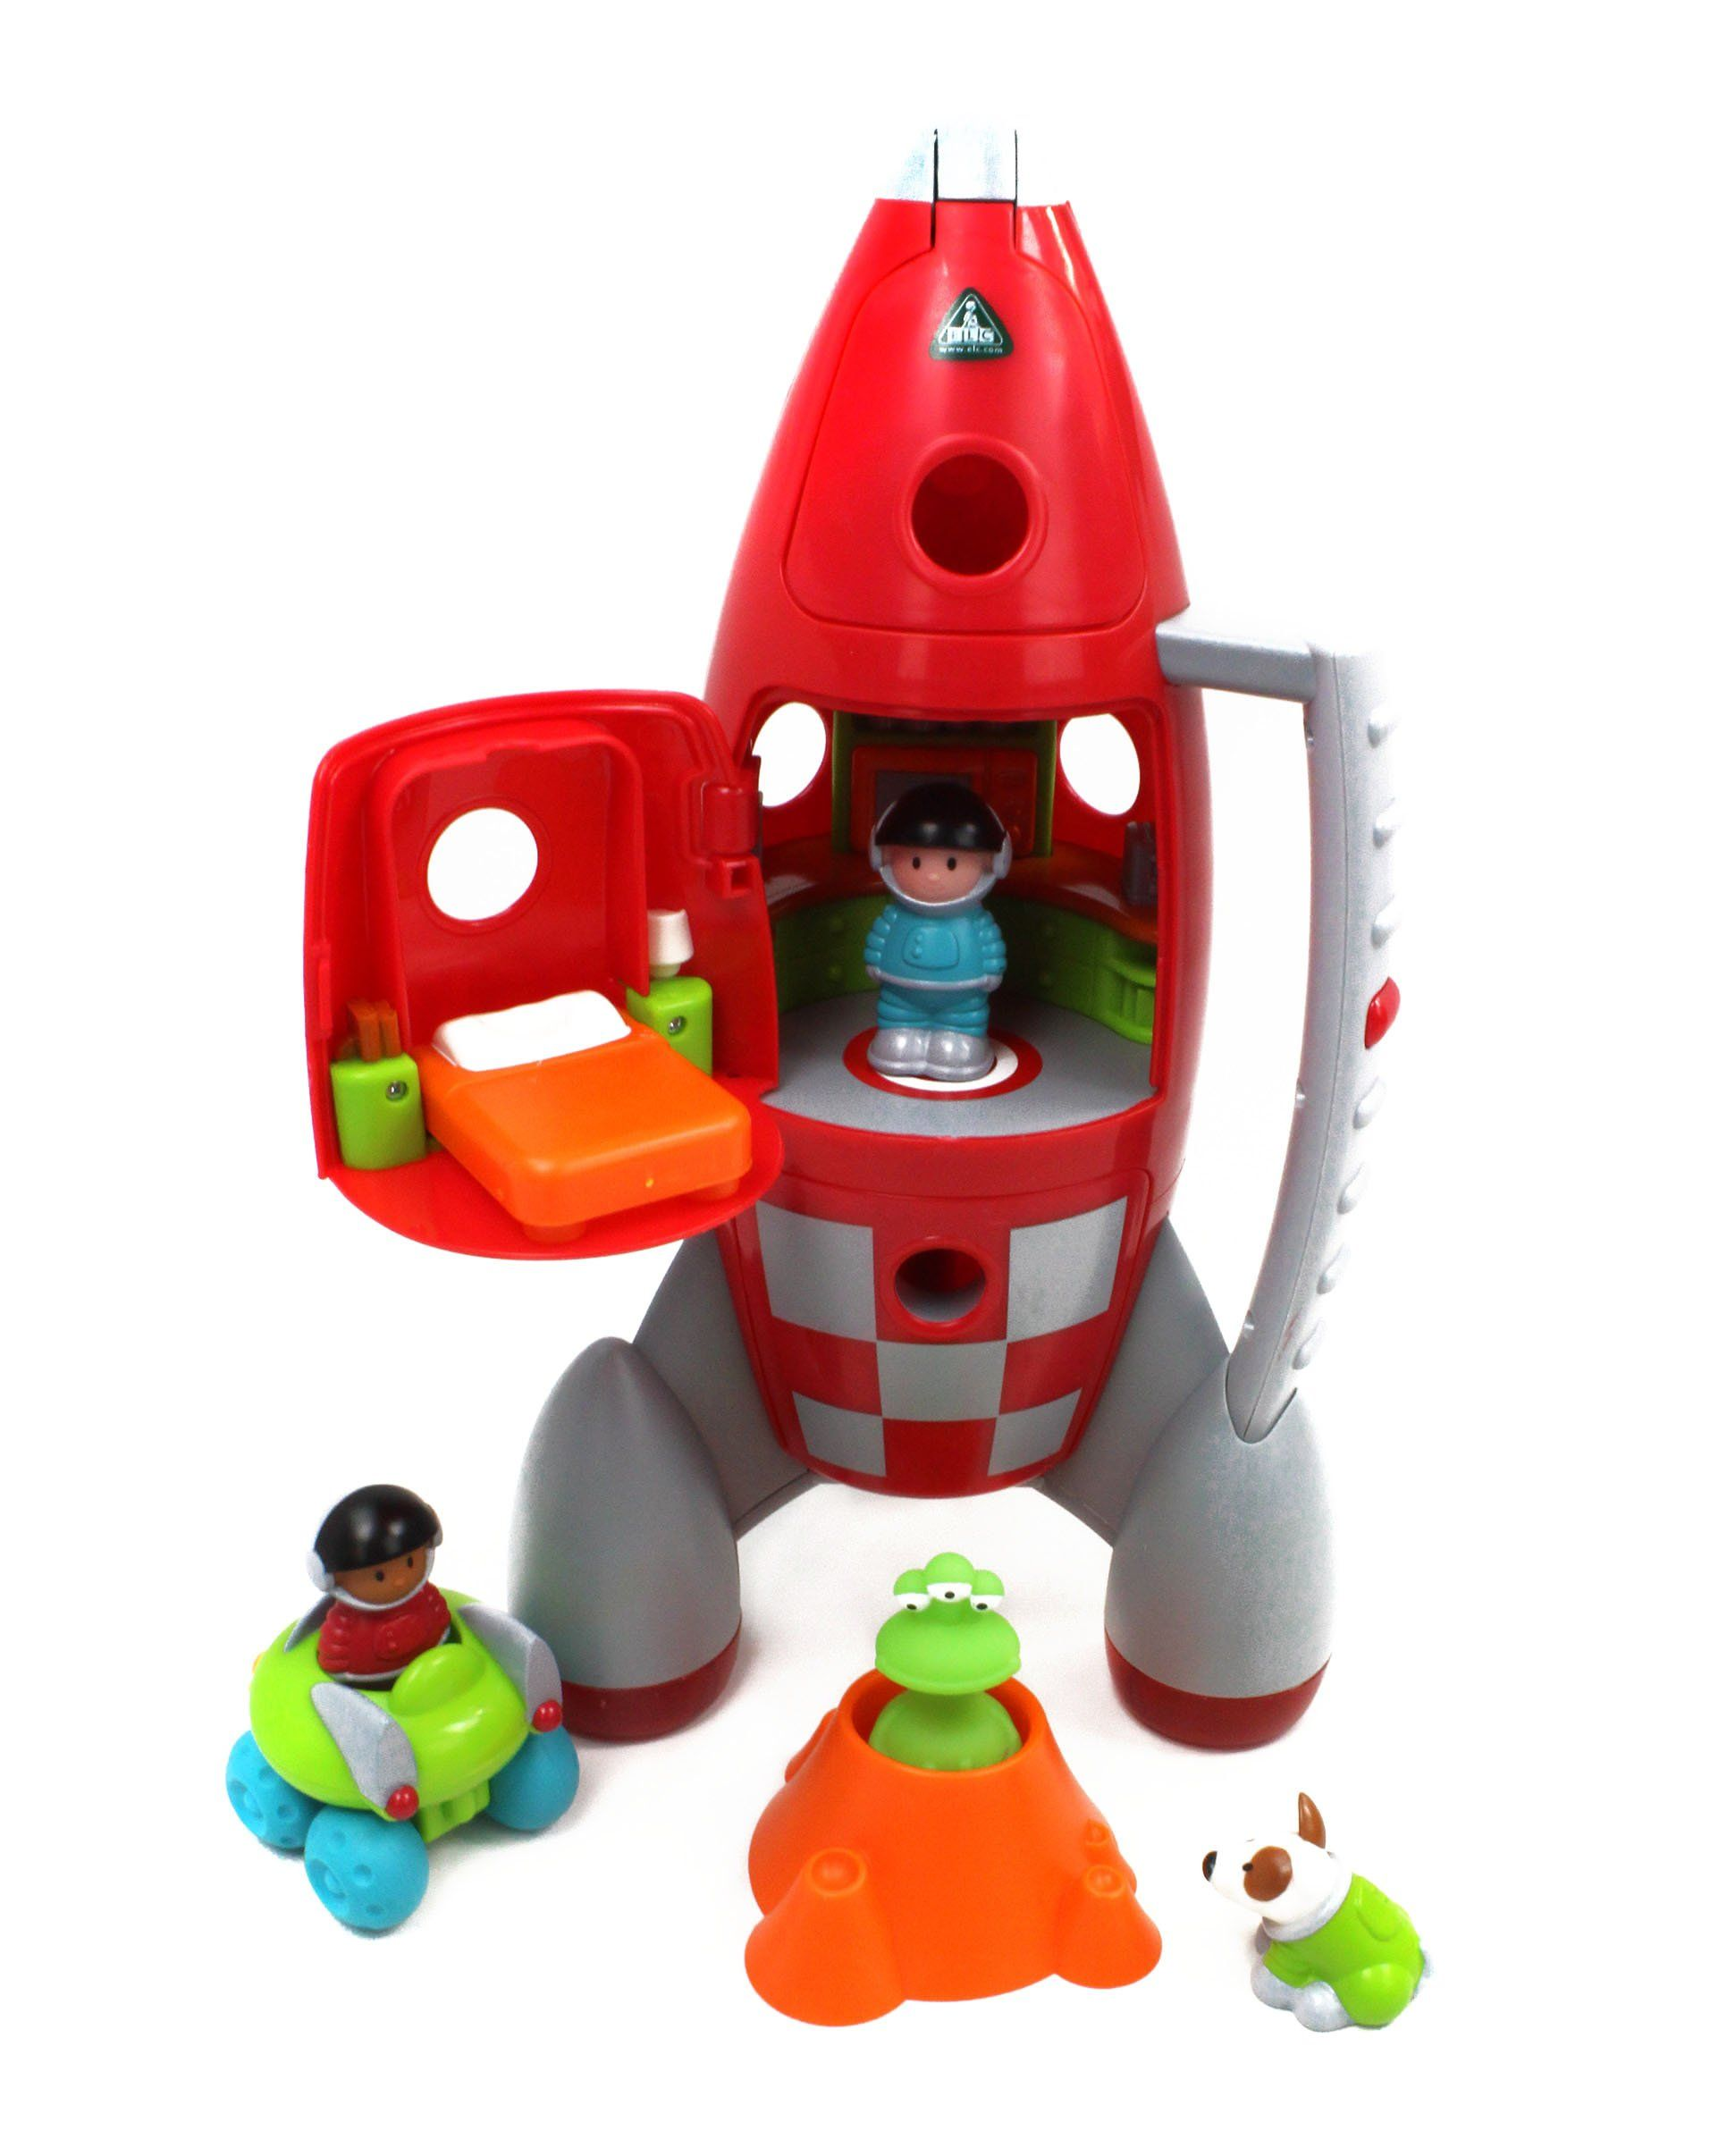 Amazon ELC Lift f Rocket Toys & Games